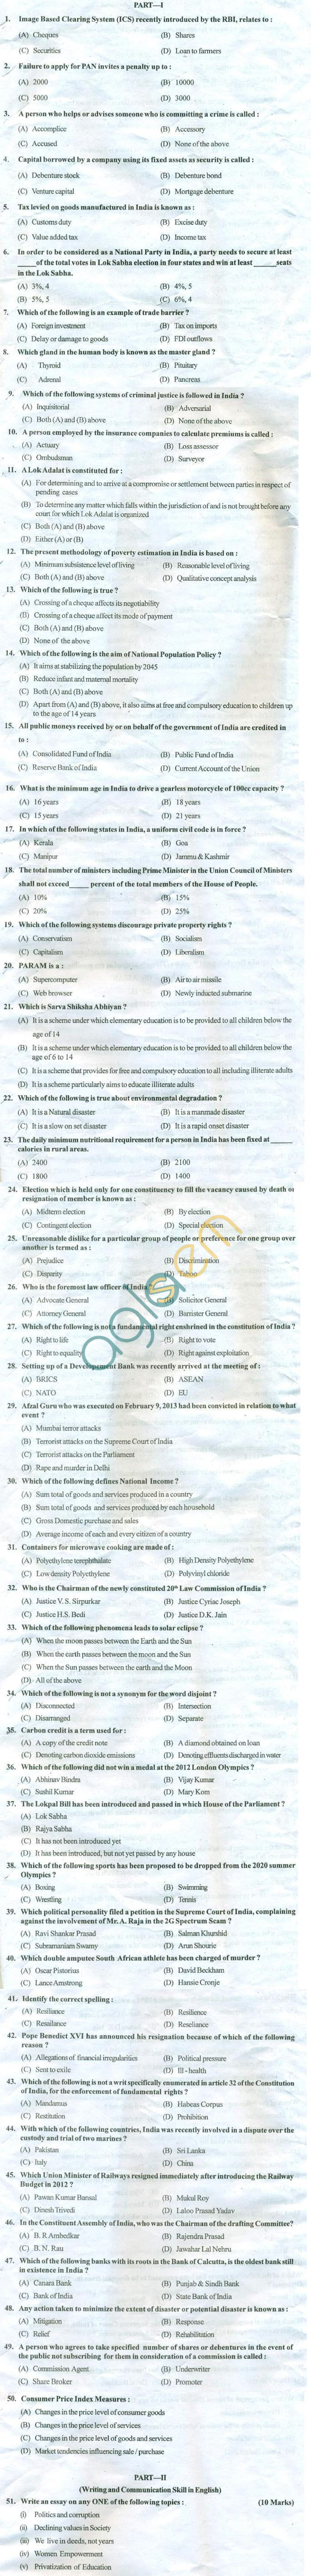 PU LL.B 2013 Question Paper with Answers